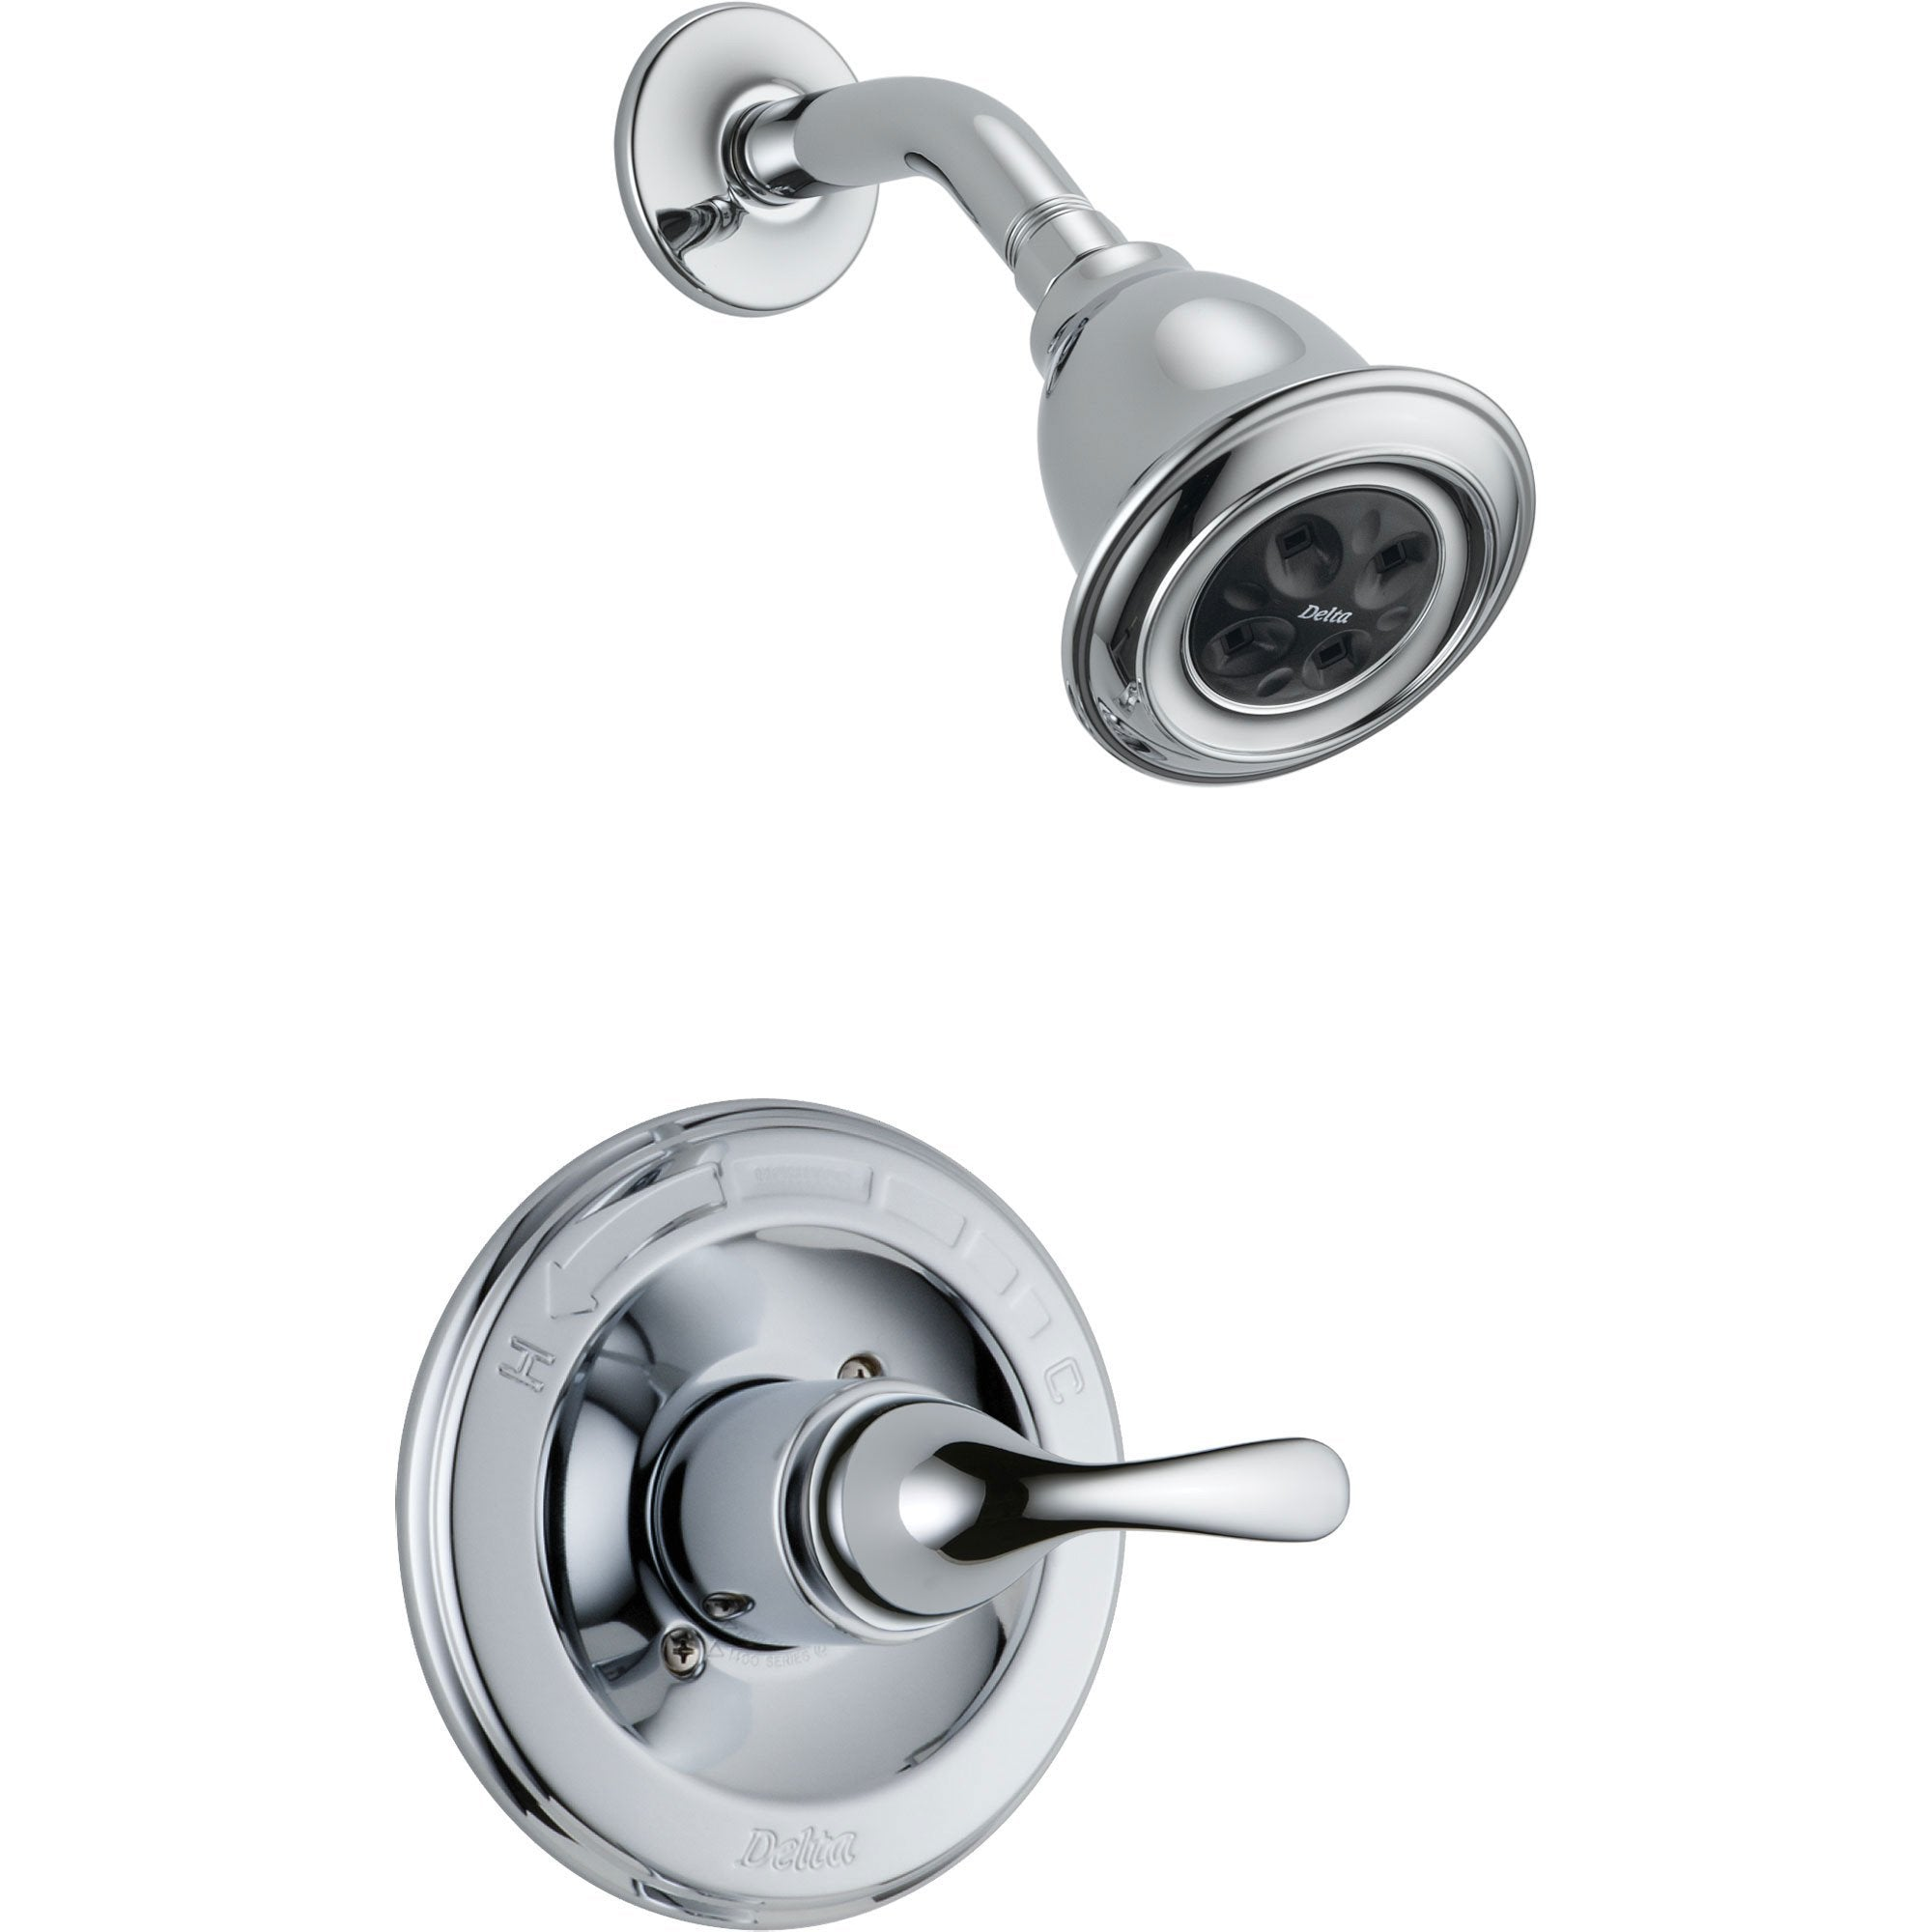 Delta Classic Single Handle Chrome Finish Shower Faucet with Valve D616V